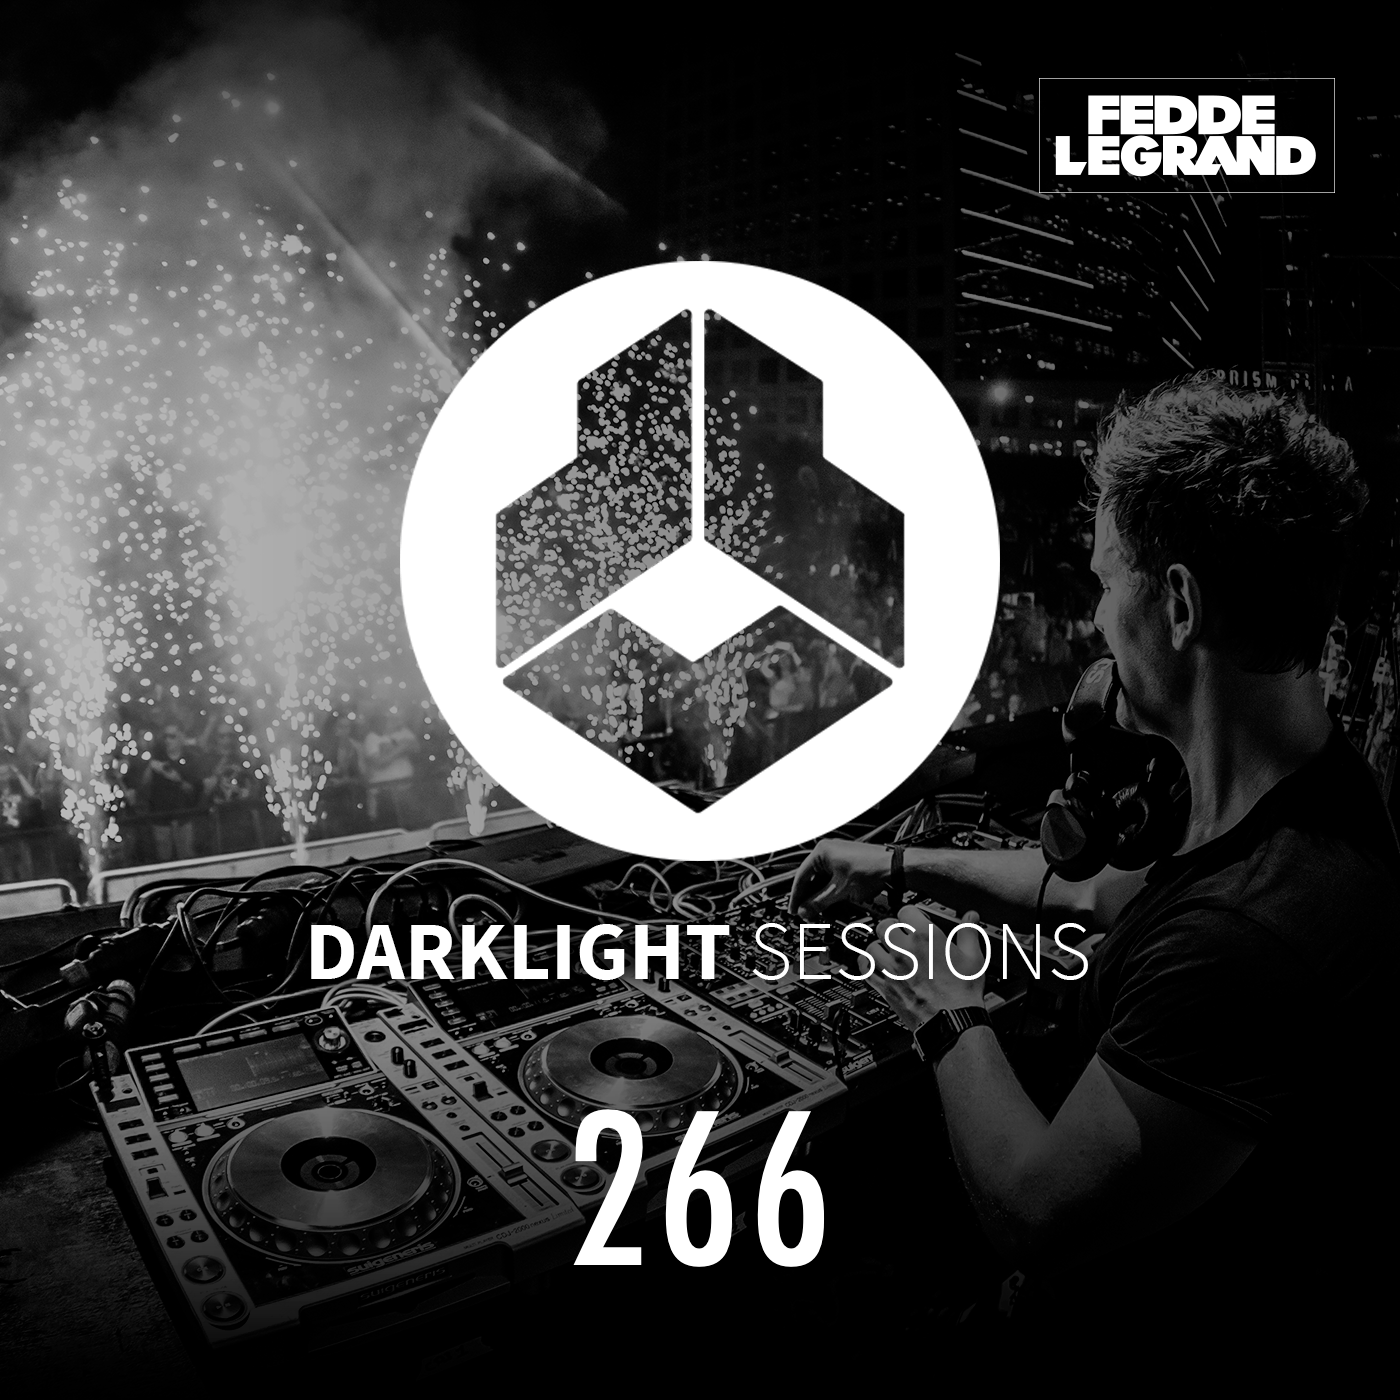 Darklight Sessions 266